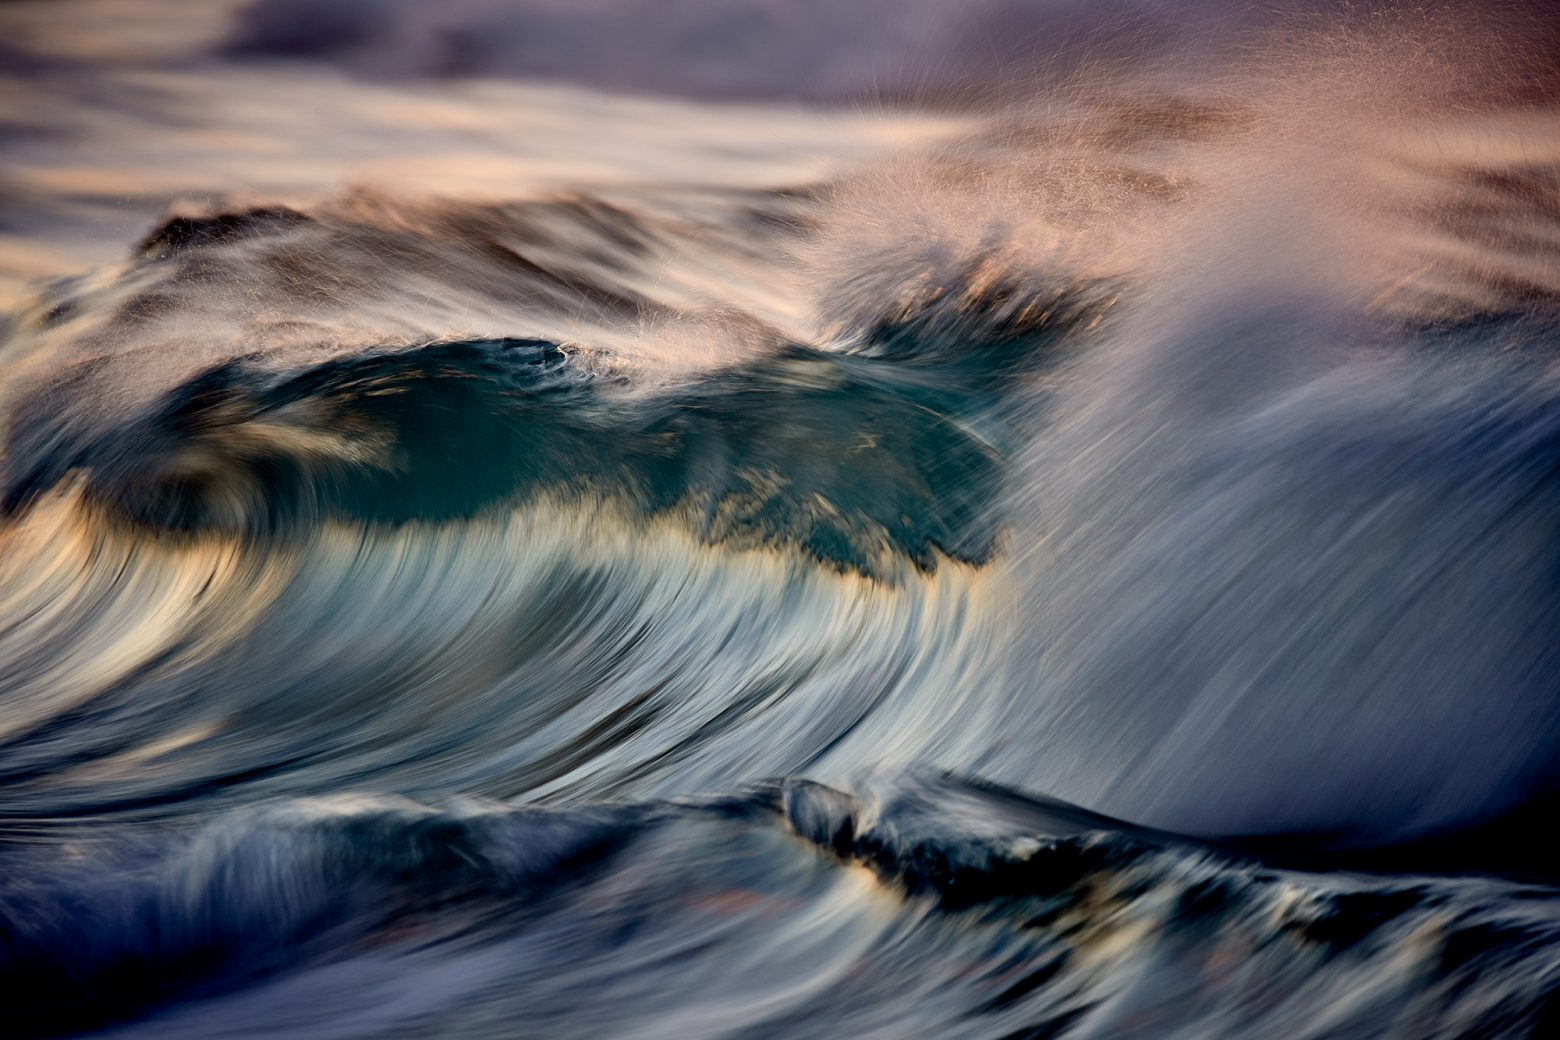 A wave with many faces